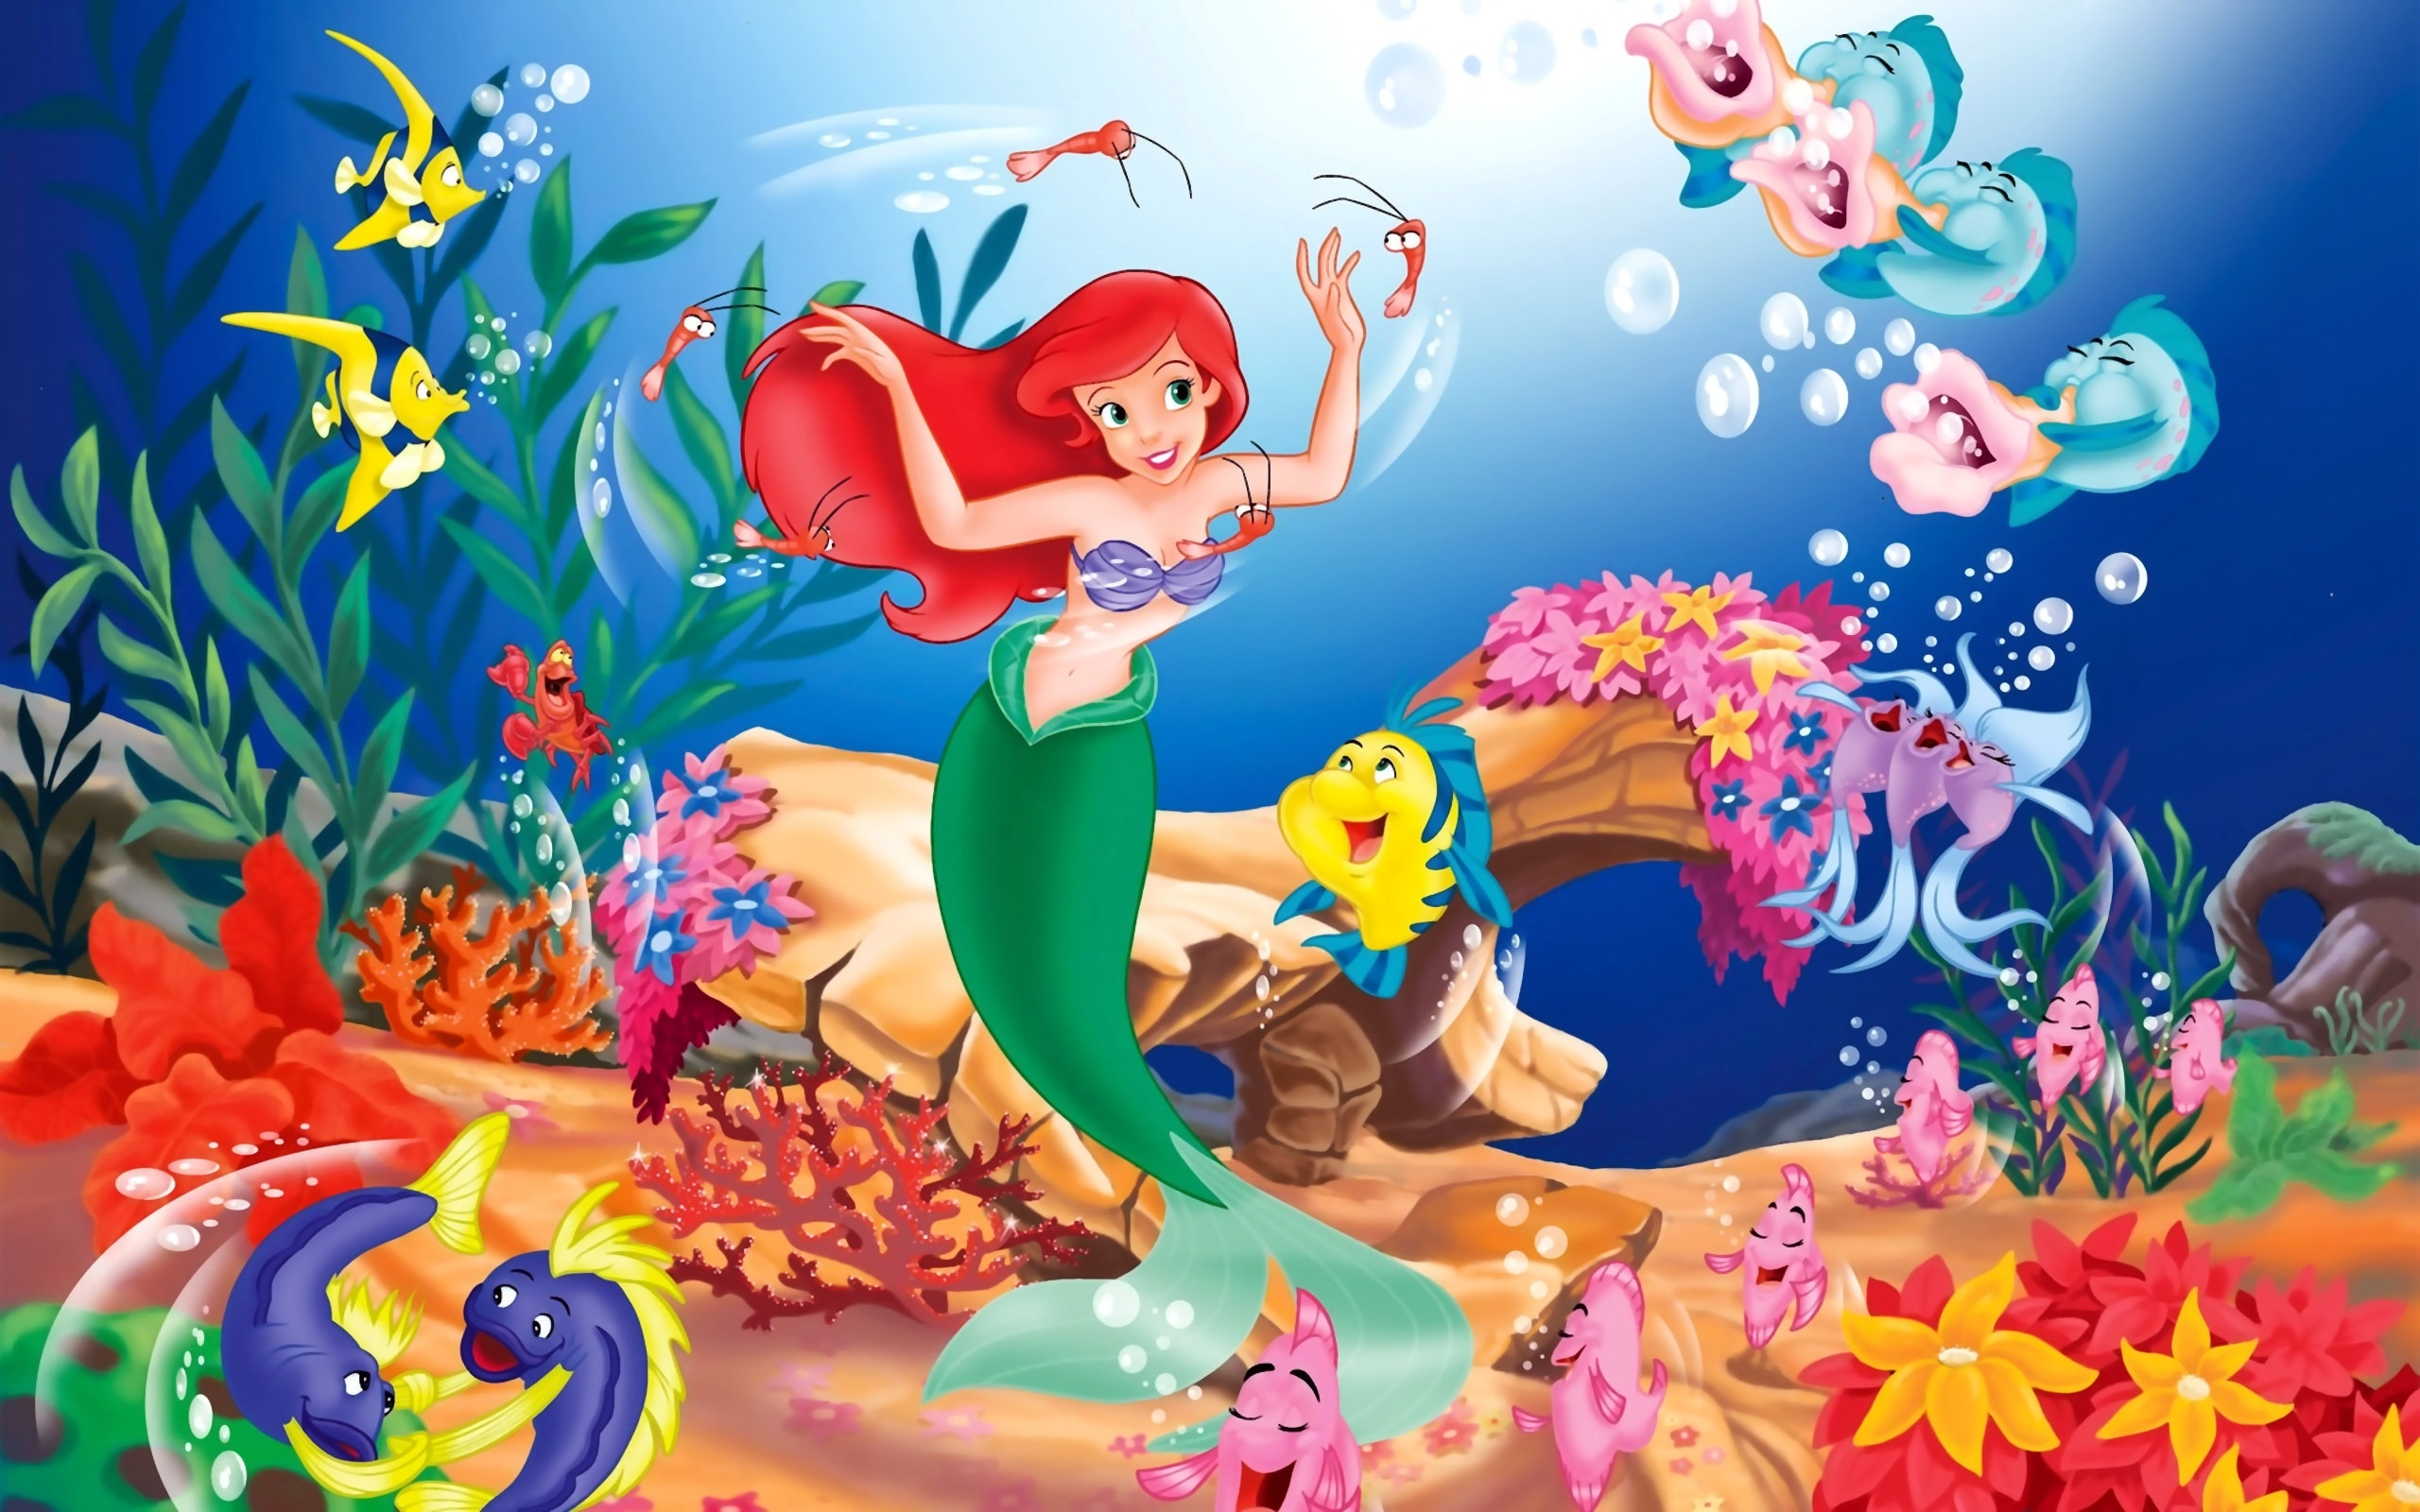 Disney Wallpaper 194 Best HD